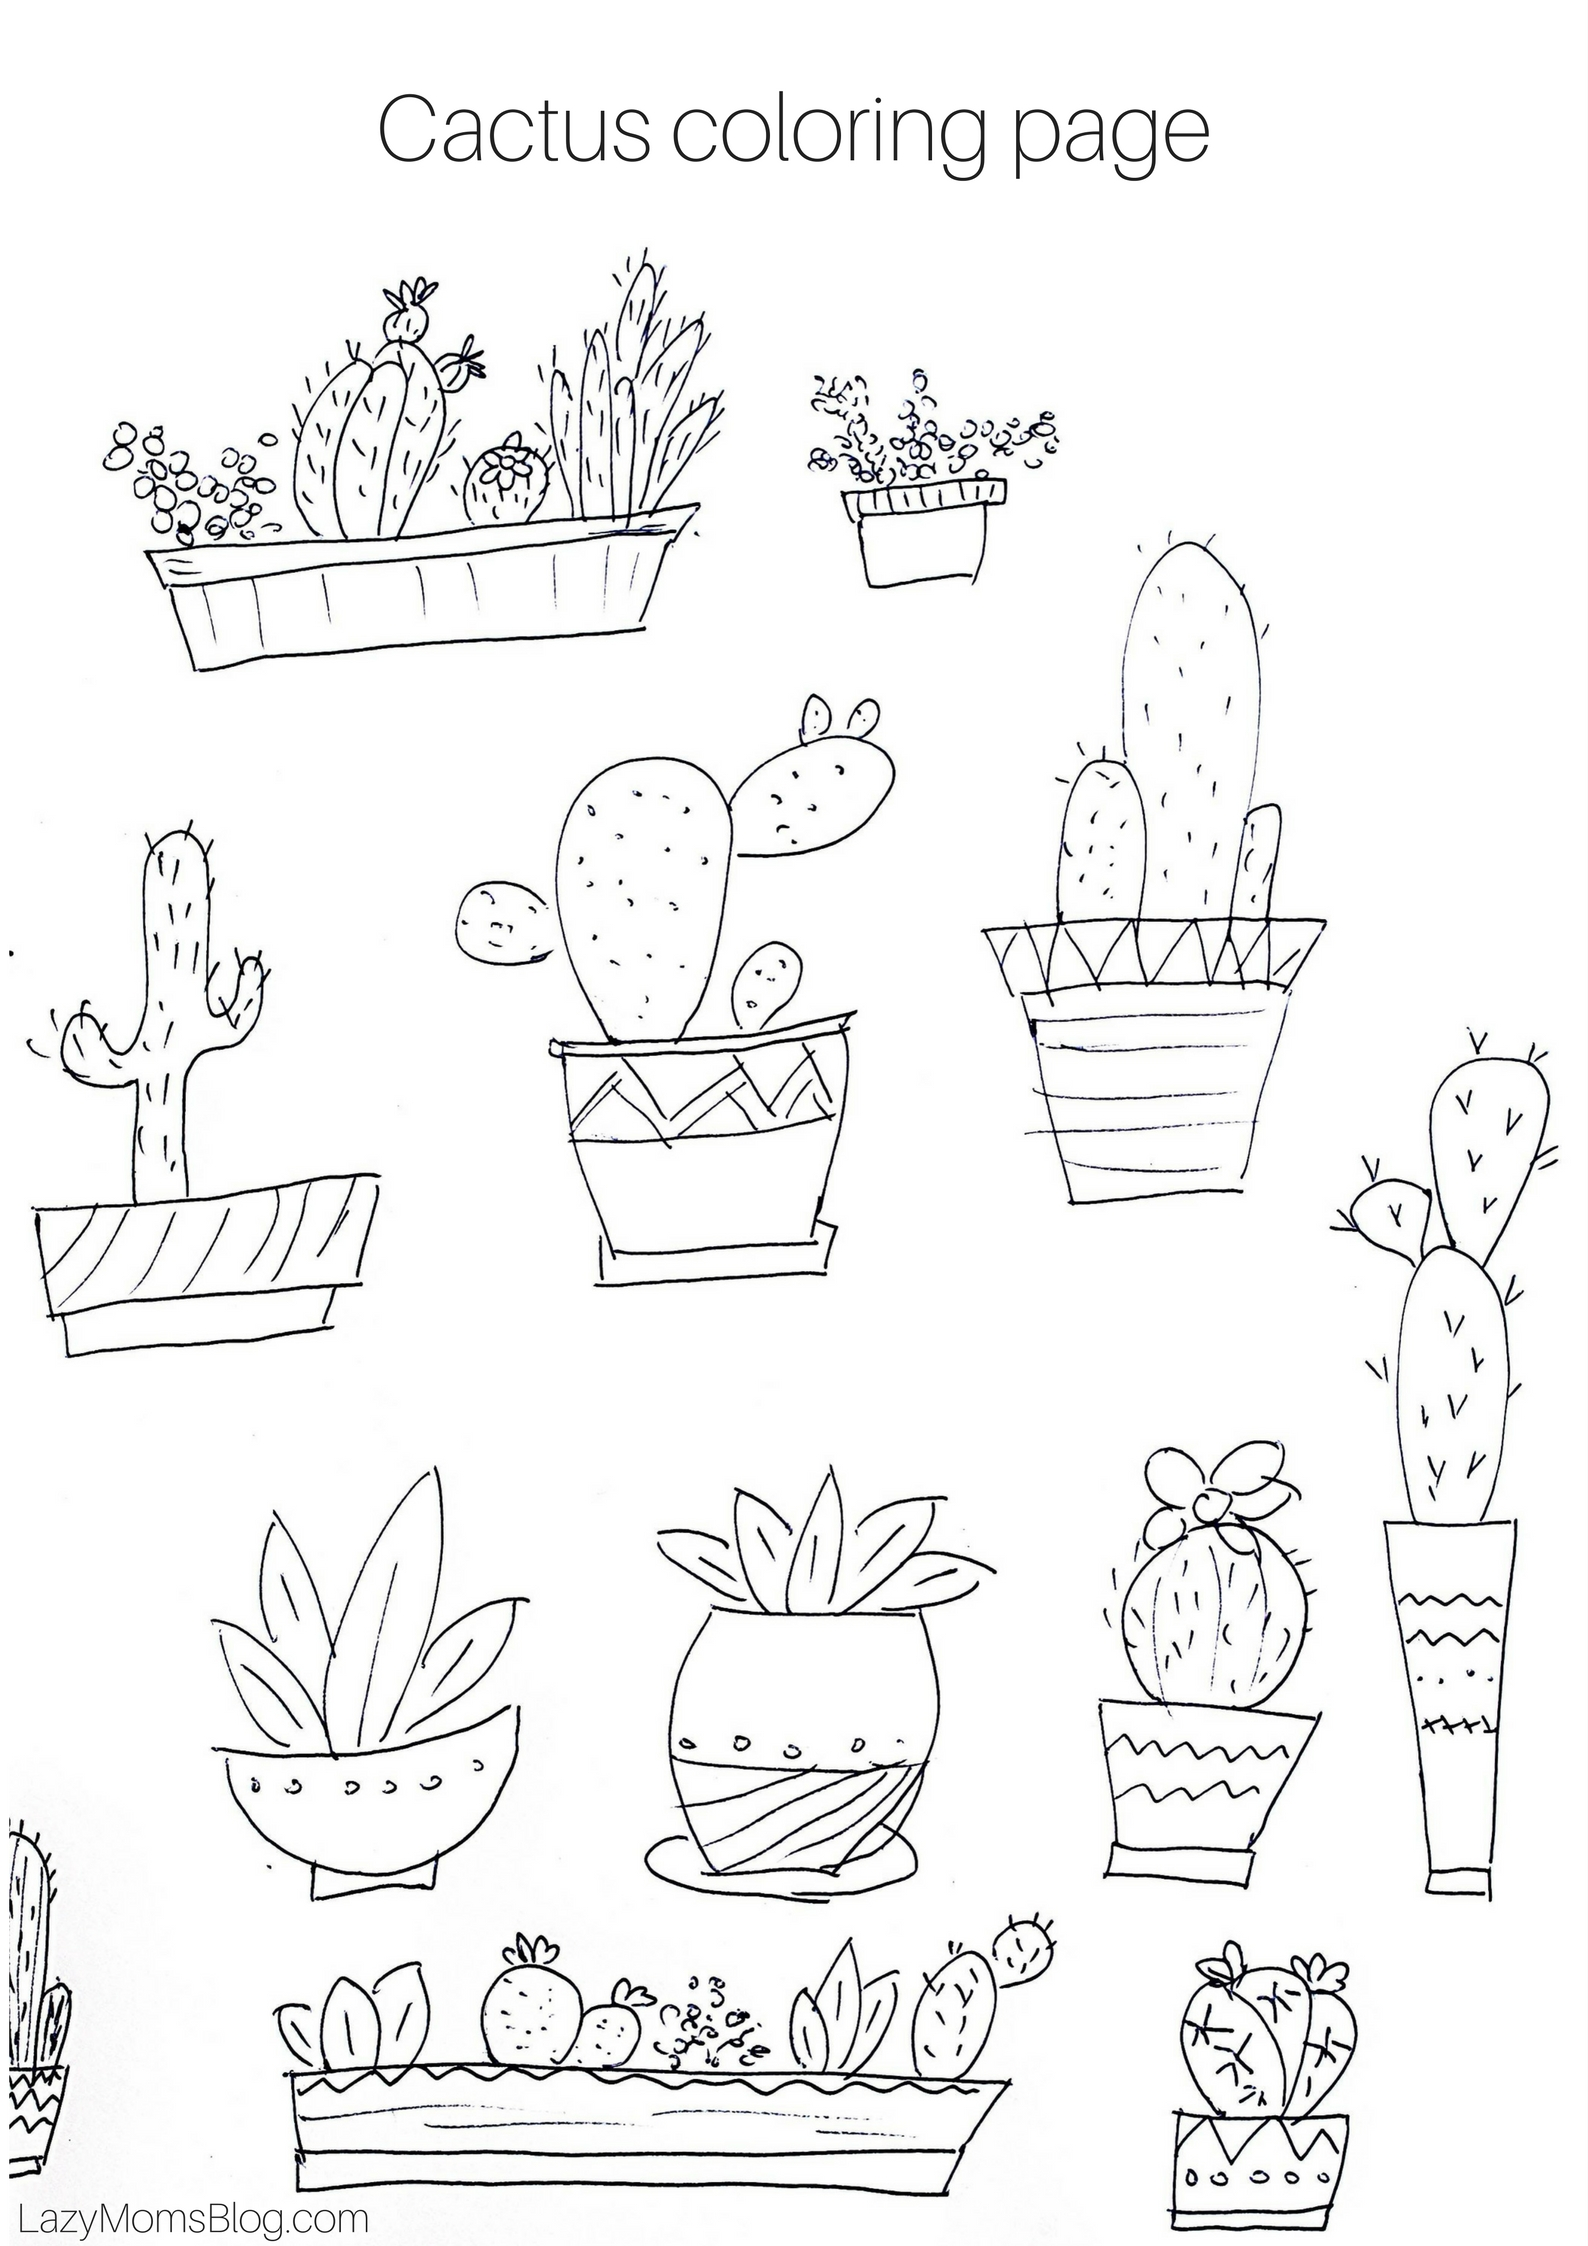 cactus coloring page 28 images cactus coloring pages and print